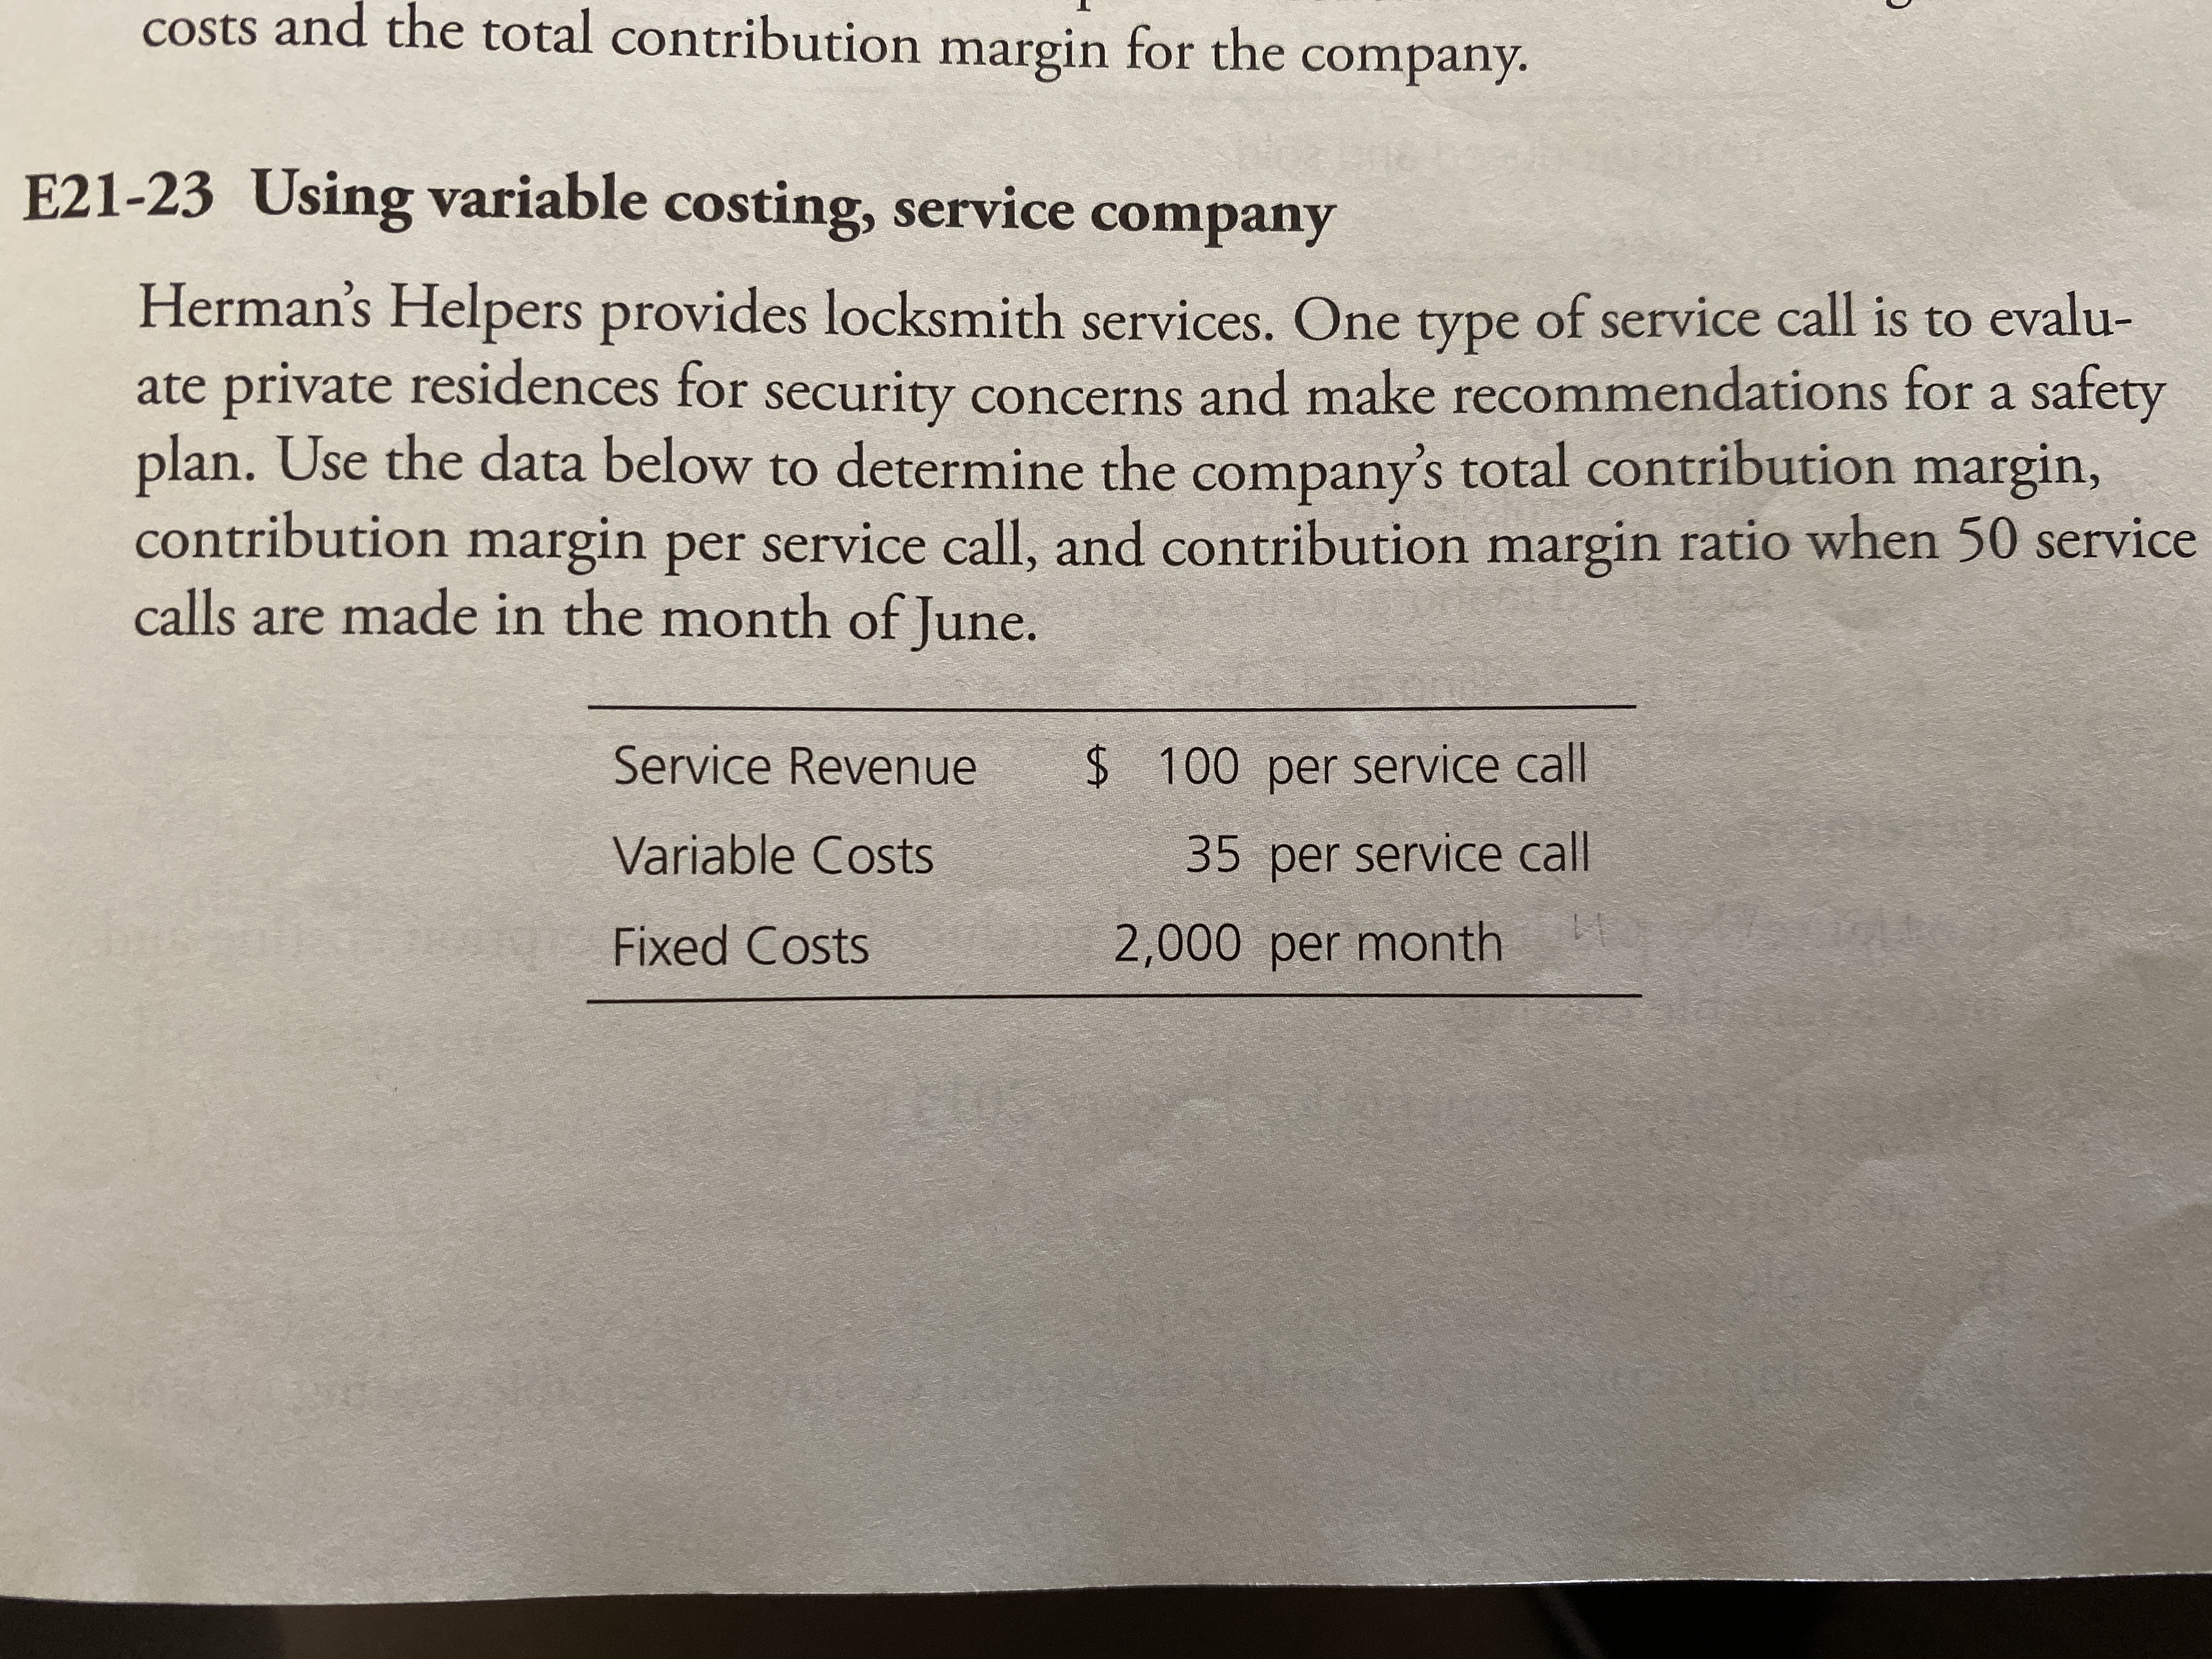 costs and the total contribution margin for the company. E21-23 Using variable costing, service company Herman's Helpers provides locksmith services. One type of service call is to evalu- ate private residences for security concerns and make recommendations for a safety plan. Use the data below to determine the company's total contribution margin, contribution margin per service call, and contribution margin ratio when 50 service calls are made in the month of June. Service Revenue $ 100 per service call Variable Costs 35 per service call Fixed Costs 2,000 per month